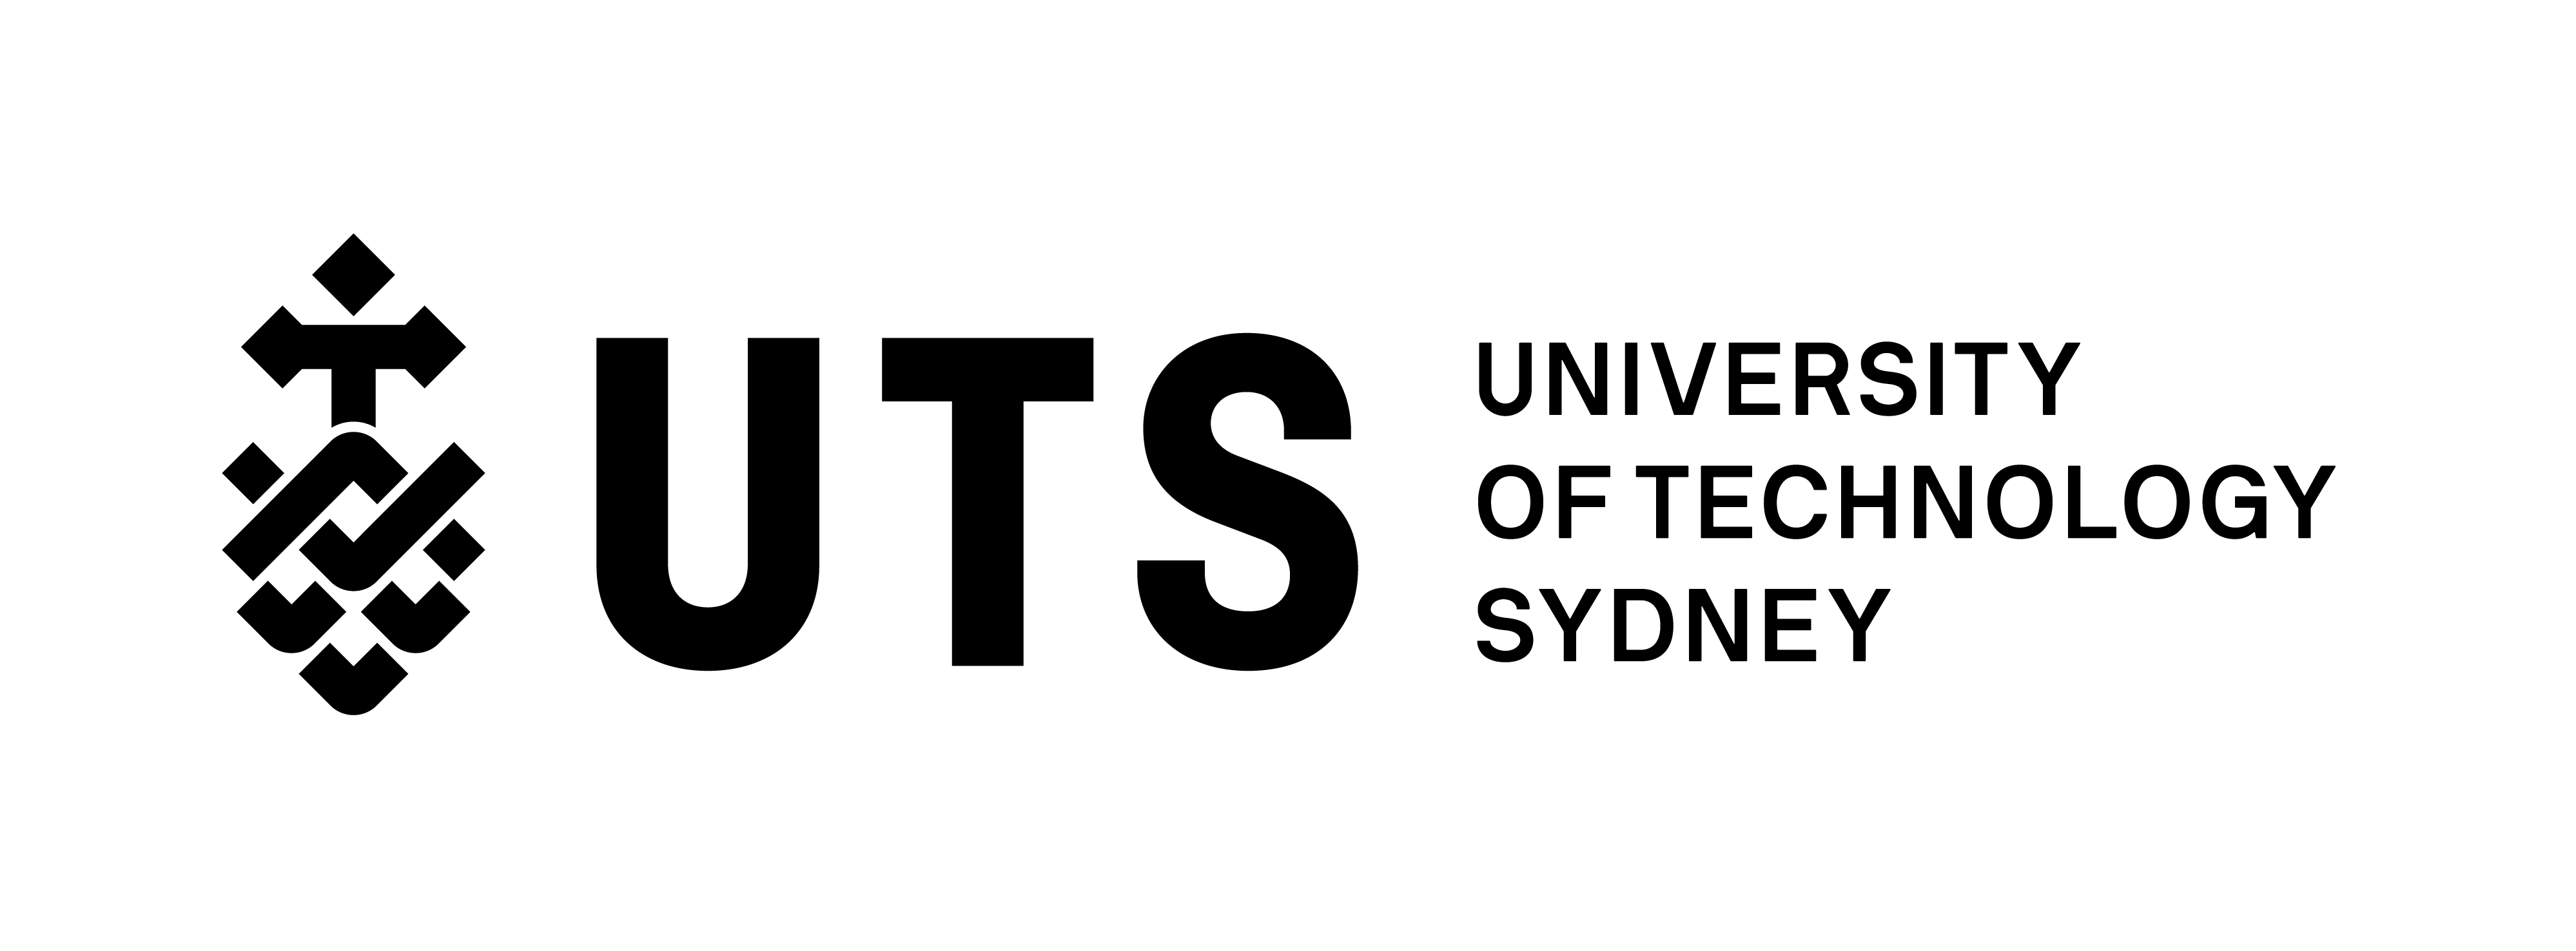 University of Technology Sydney - Bachelor of Engineering (Honours) / Bachelor of Medical Science